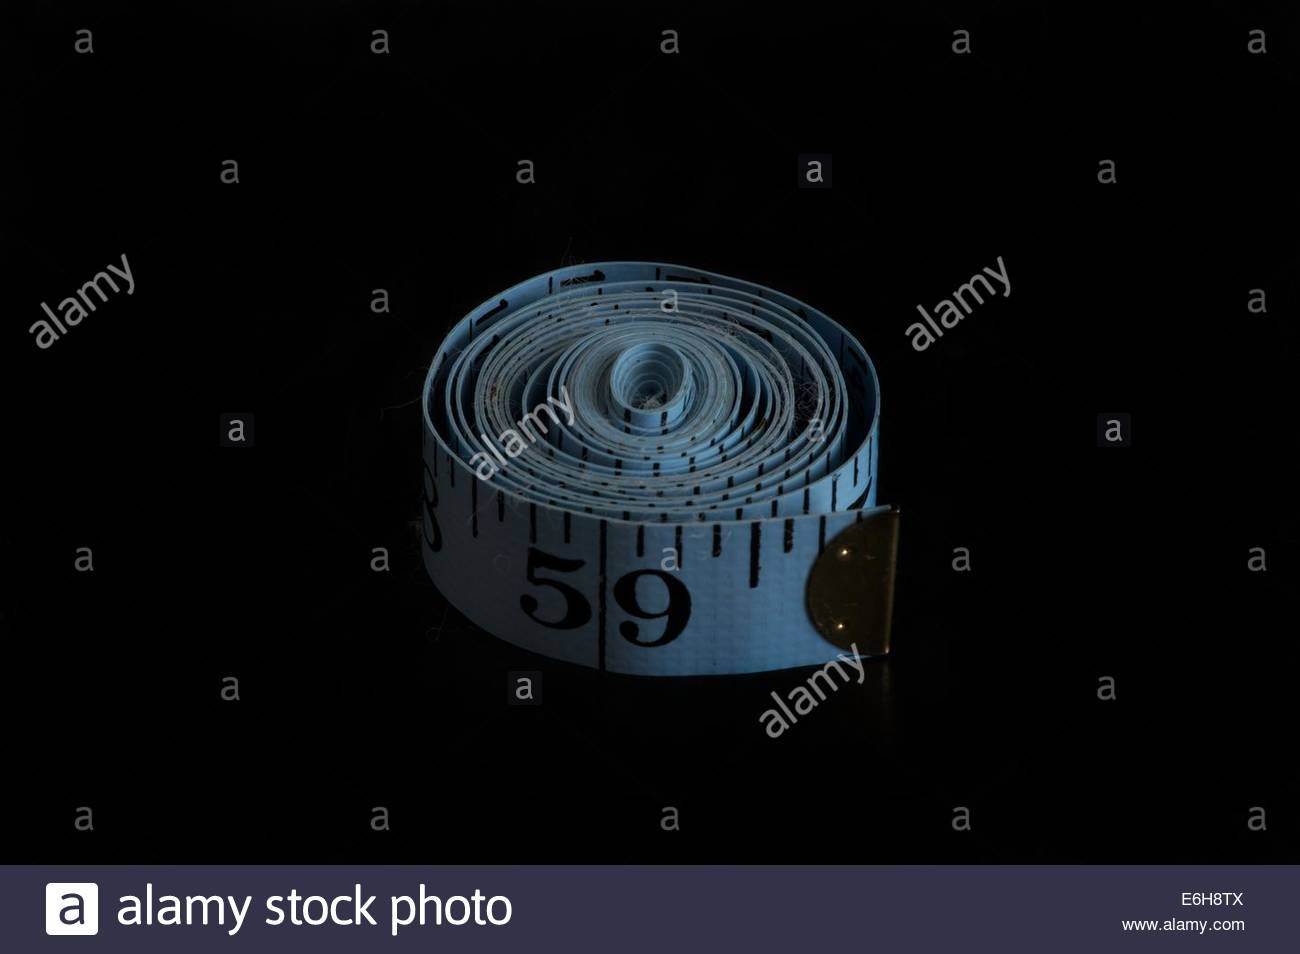 A rolled up tape measure displaying inches. - Stock Image